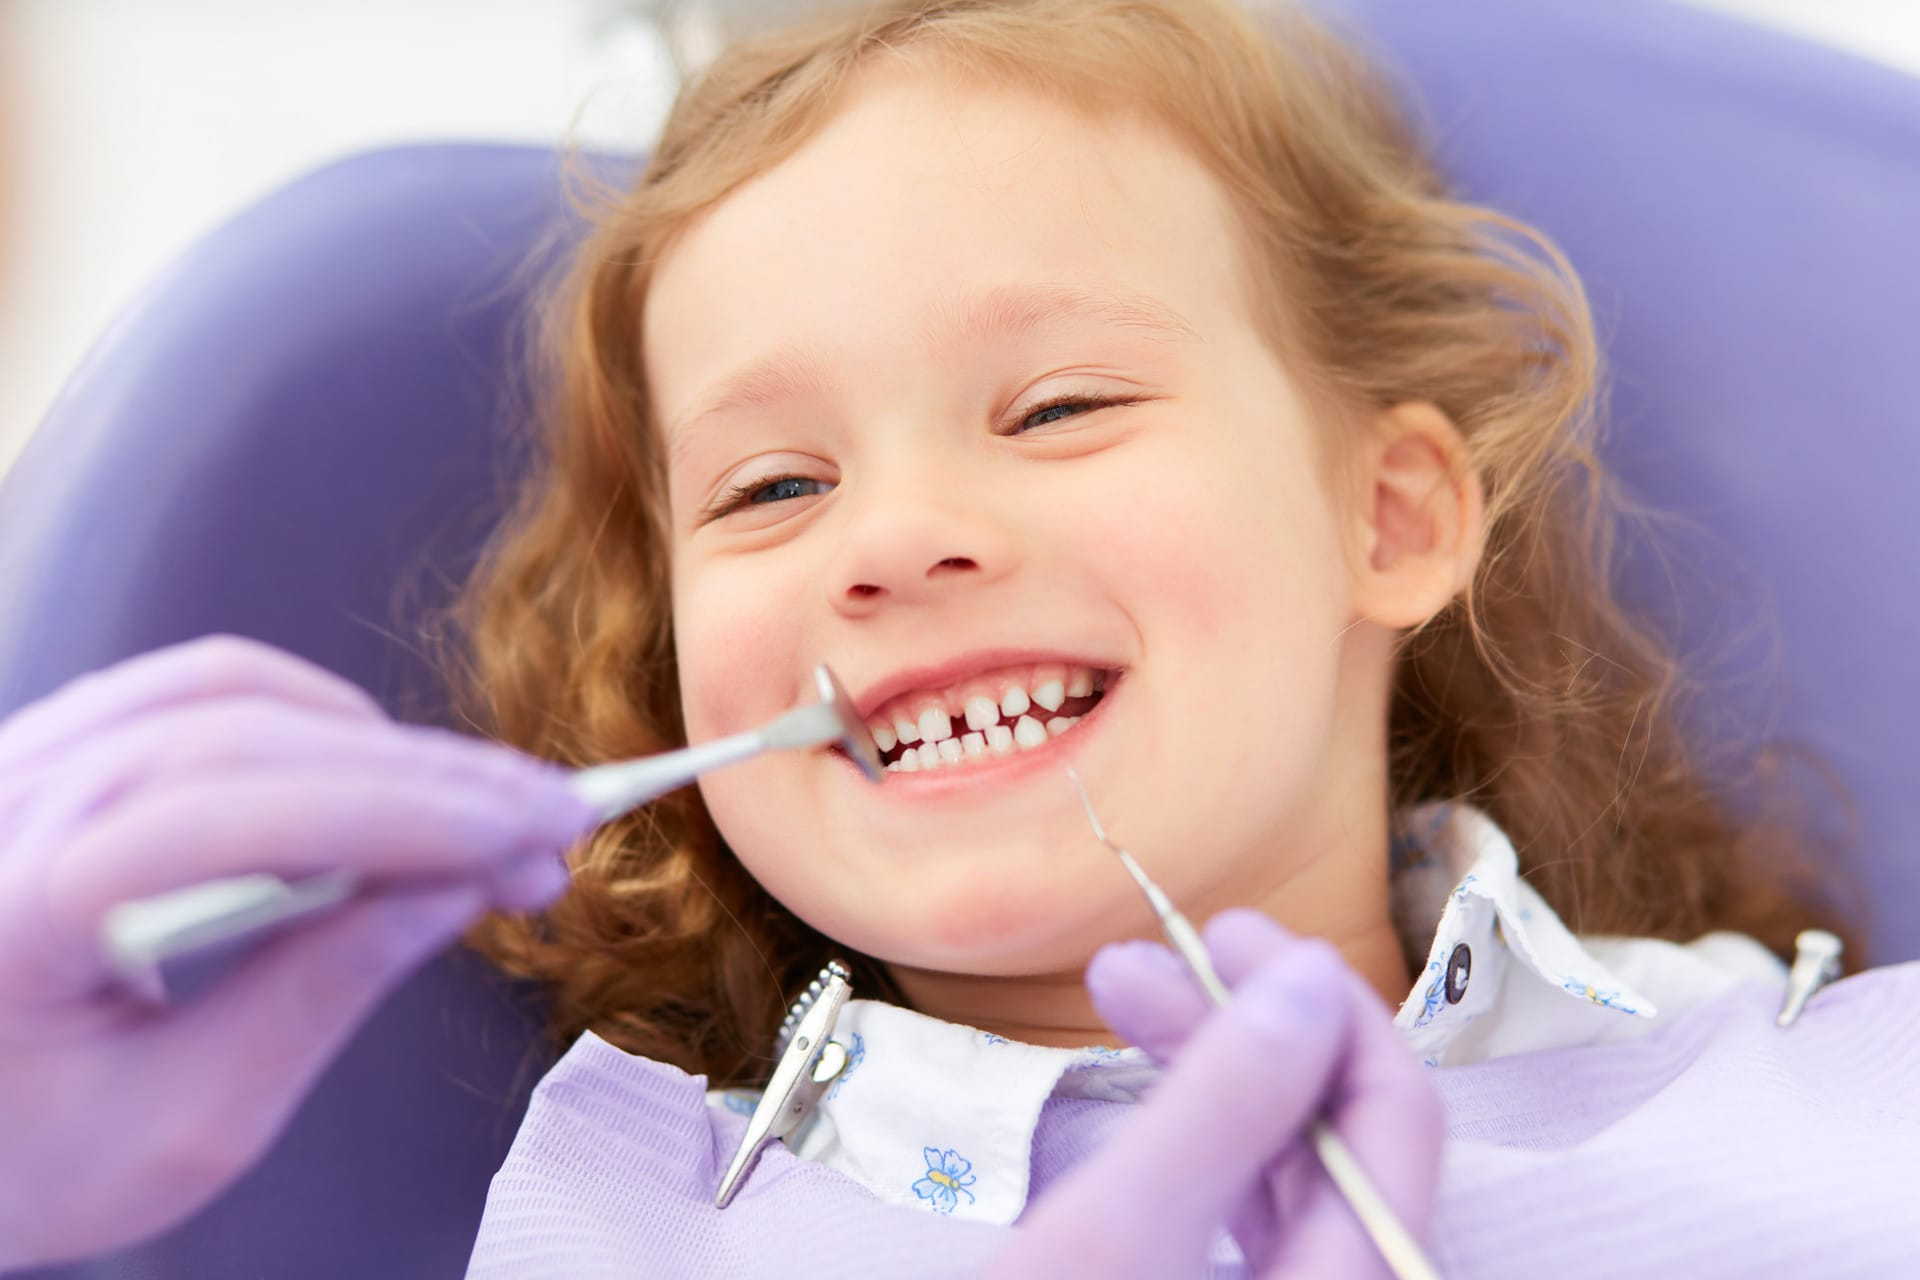 pediatric dentist with a kid in the dentist chair